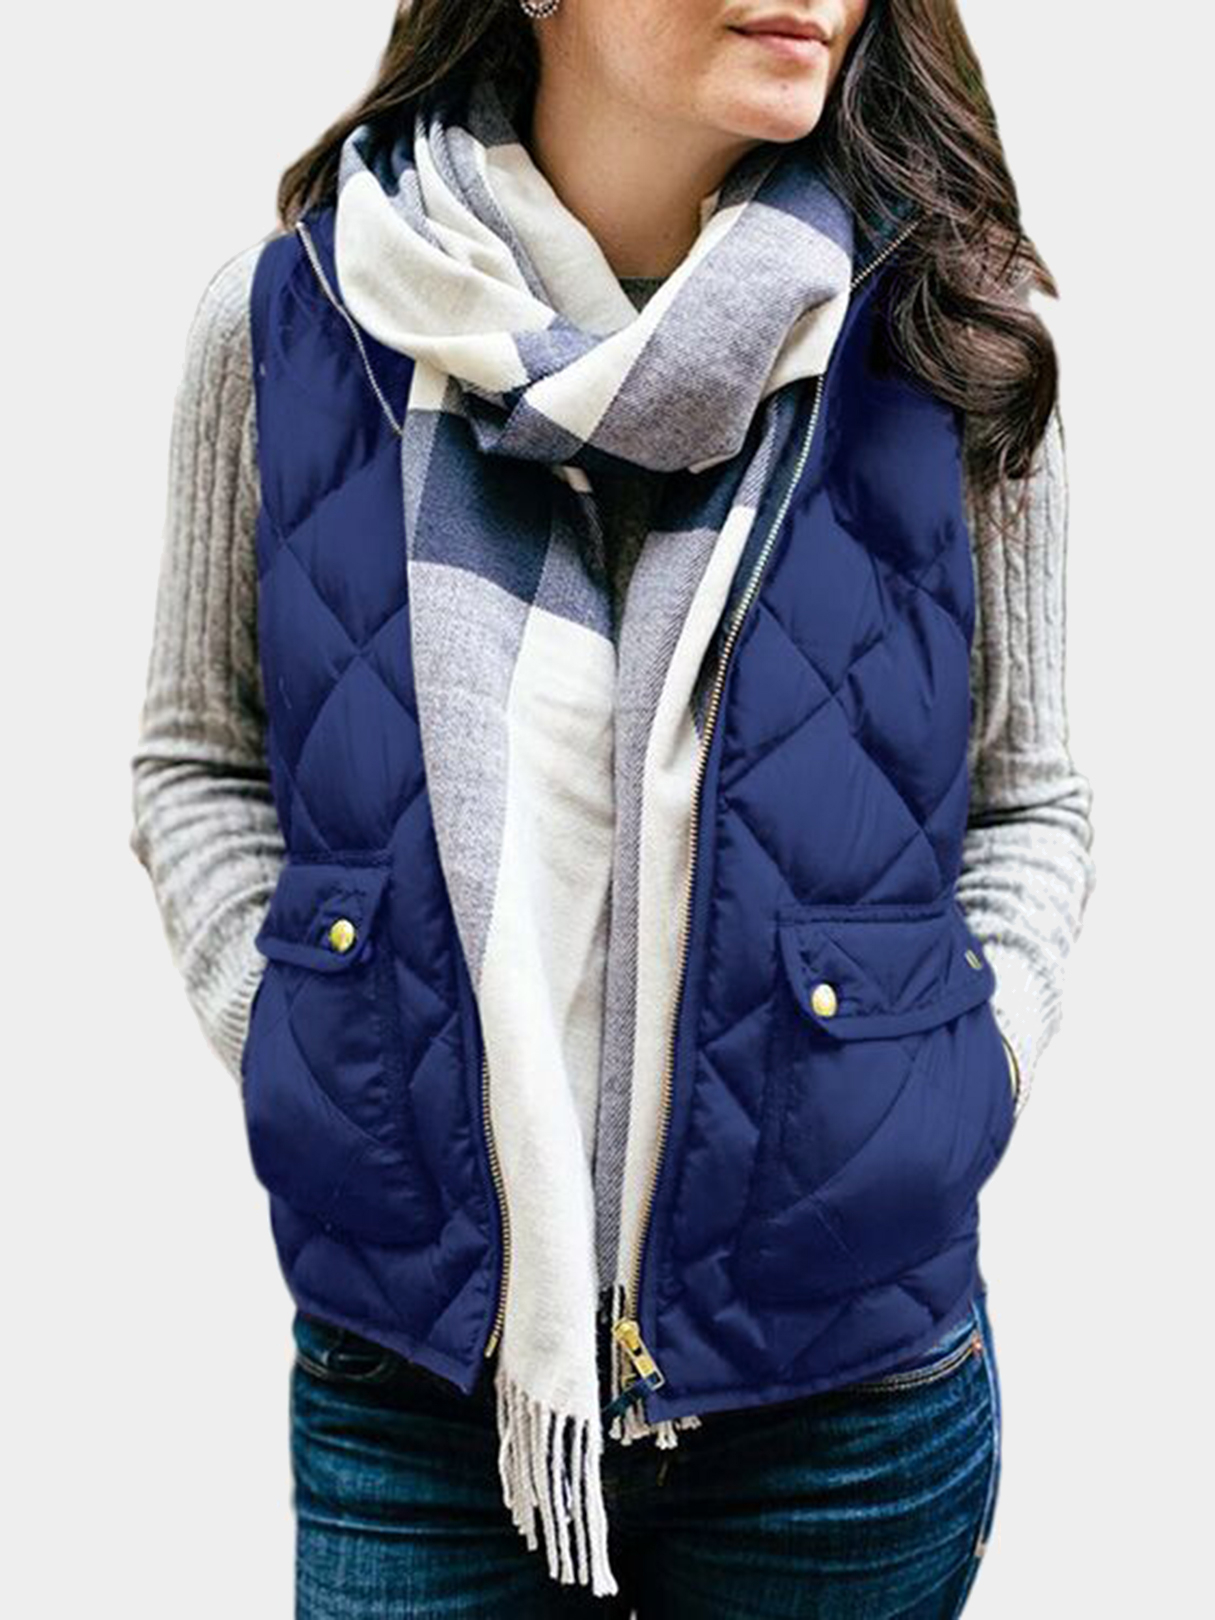 Royal Blue High Neck Sleeveless Gilet Outfit royal blue high neck sleeveless gilet outfit